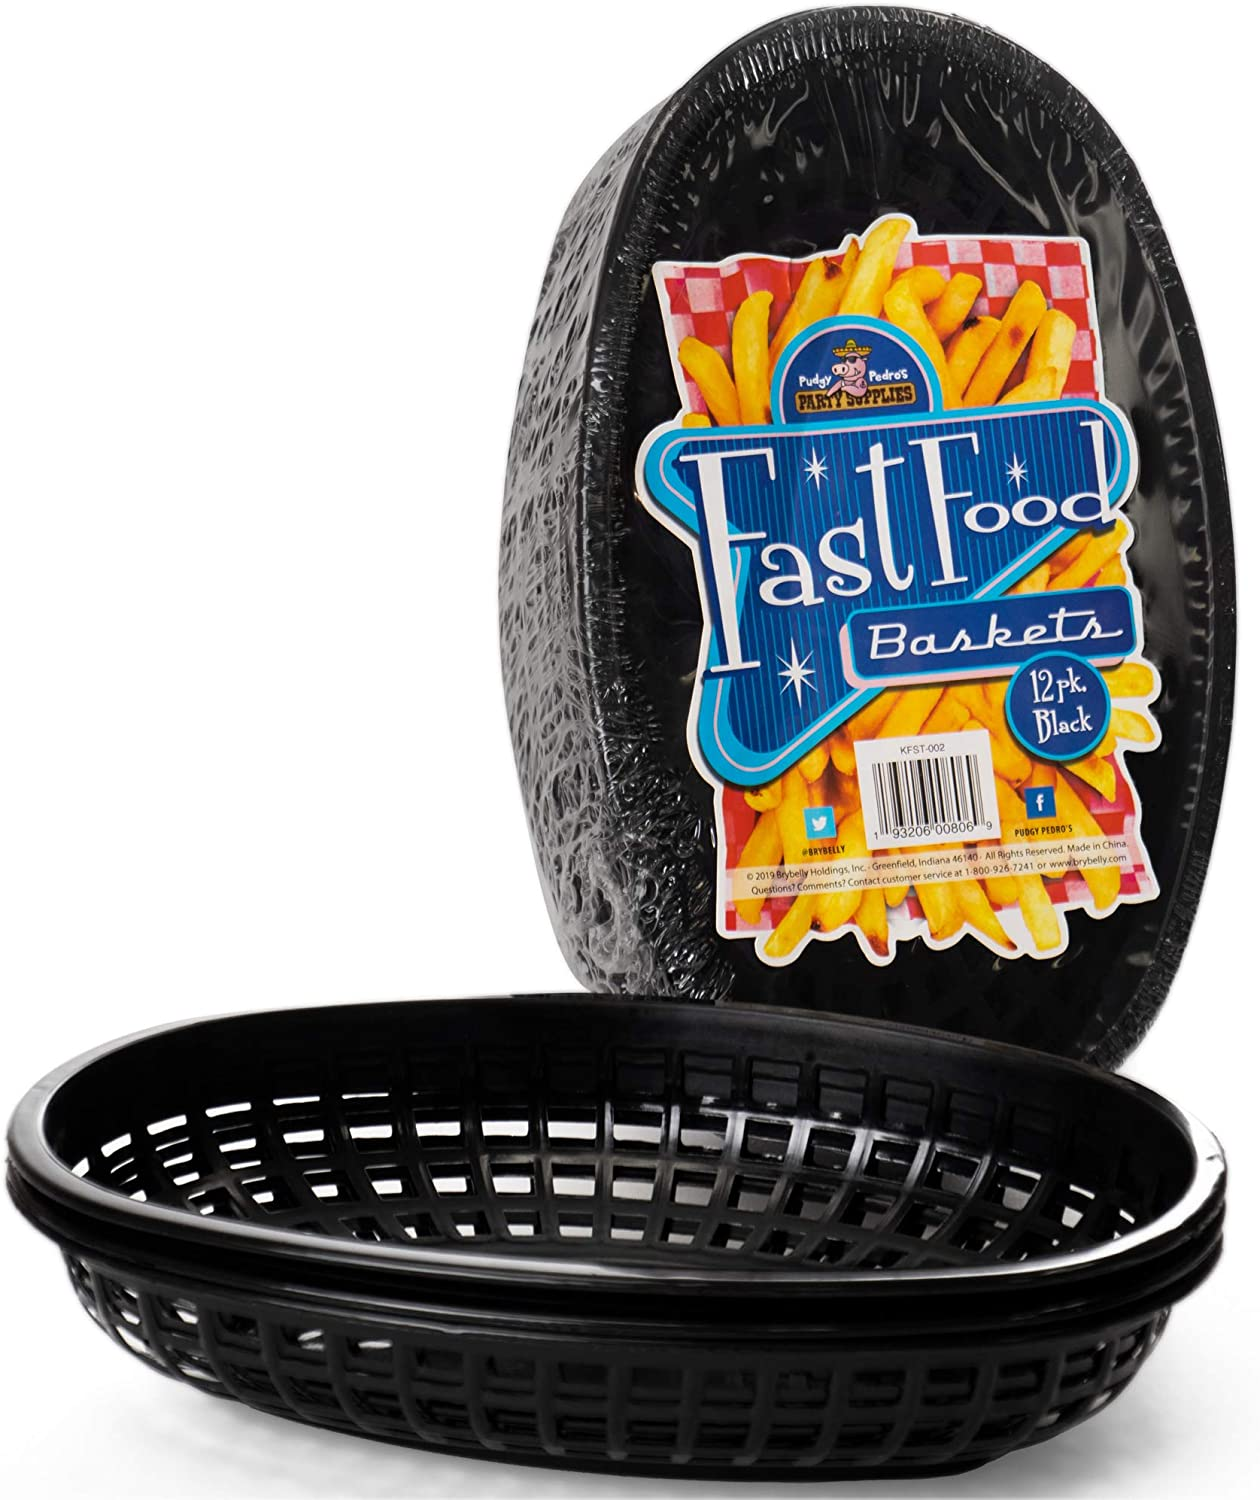 Fast Food Baskets - Classic Plastic Fry Basket, Oval-shaped Tray Design - Great for Fast Food Restaurant Supplies, Deli Serving, Bread Baskets, Chicken, Burgers, Sandwiches & Fries (12 Pack, Black)